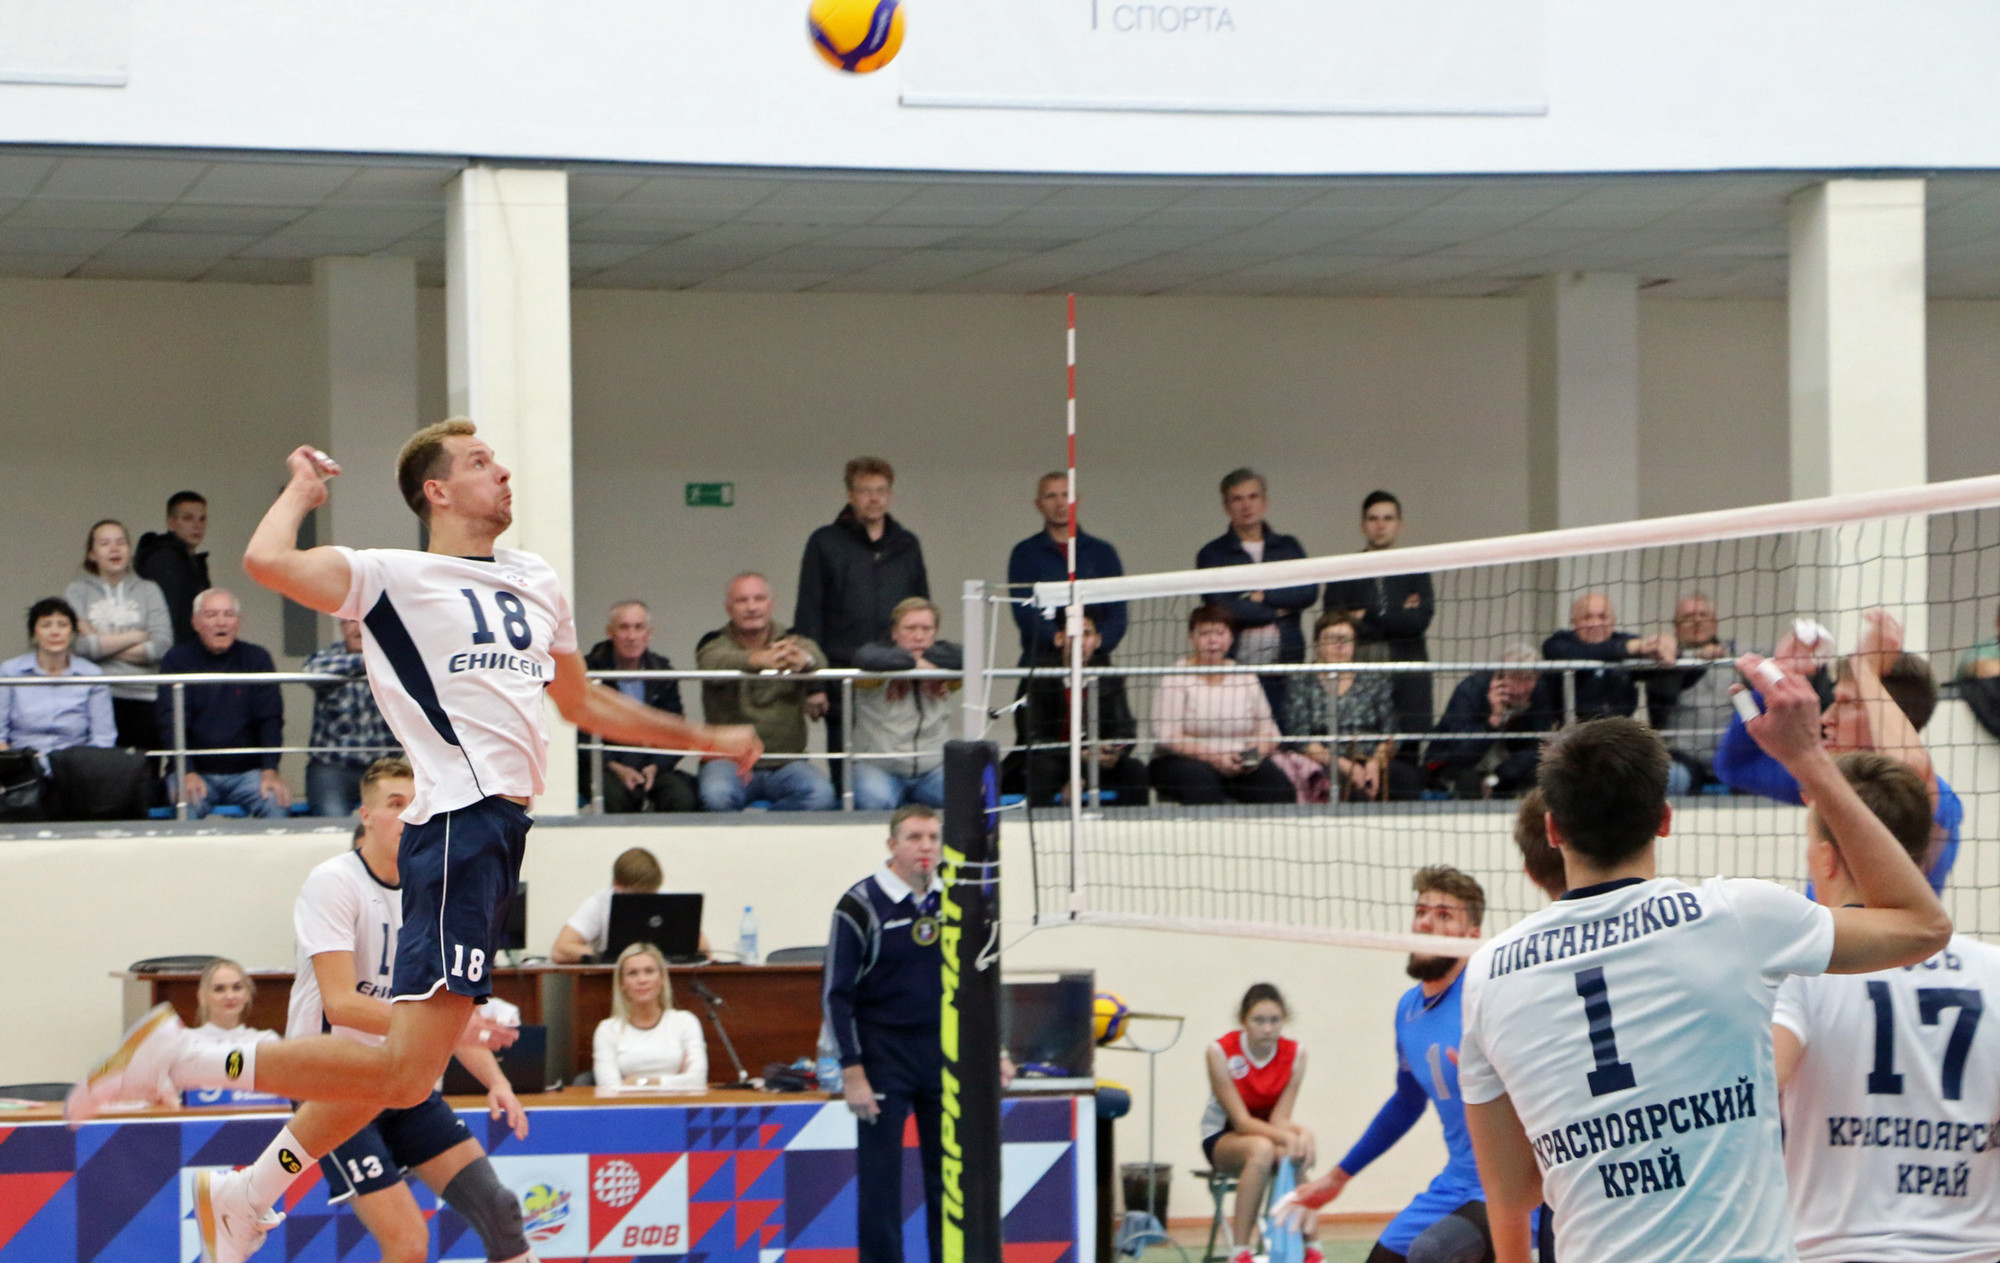 The Yenisey Volleyball Club men's team lost their opening match of the Russian Volleyball Super League ©FISU